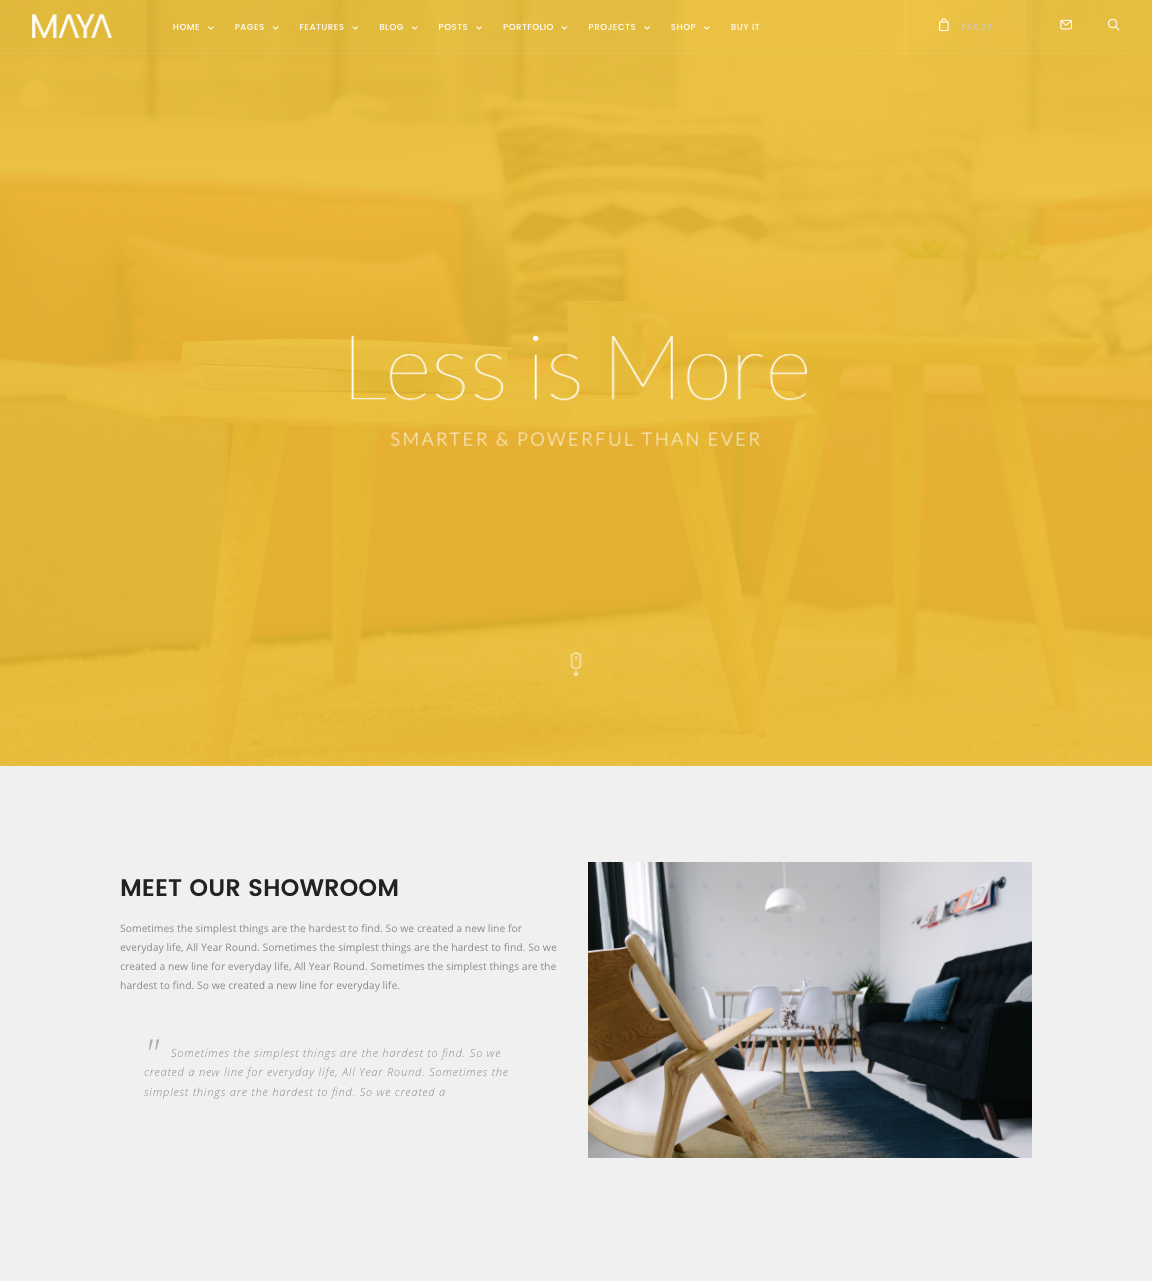 maya smart and powerful wp theme by uncommons themeforest